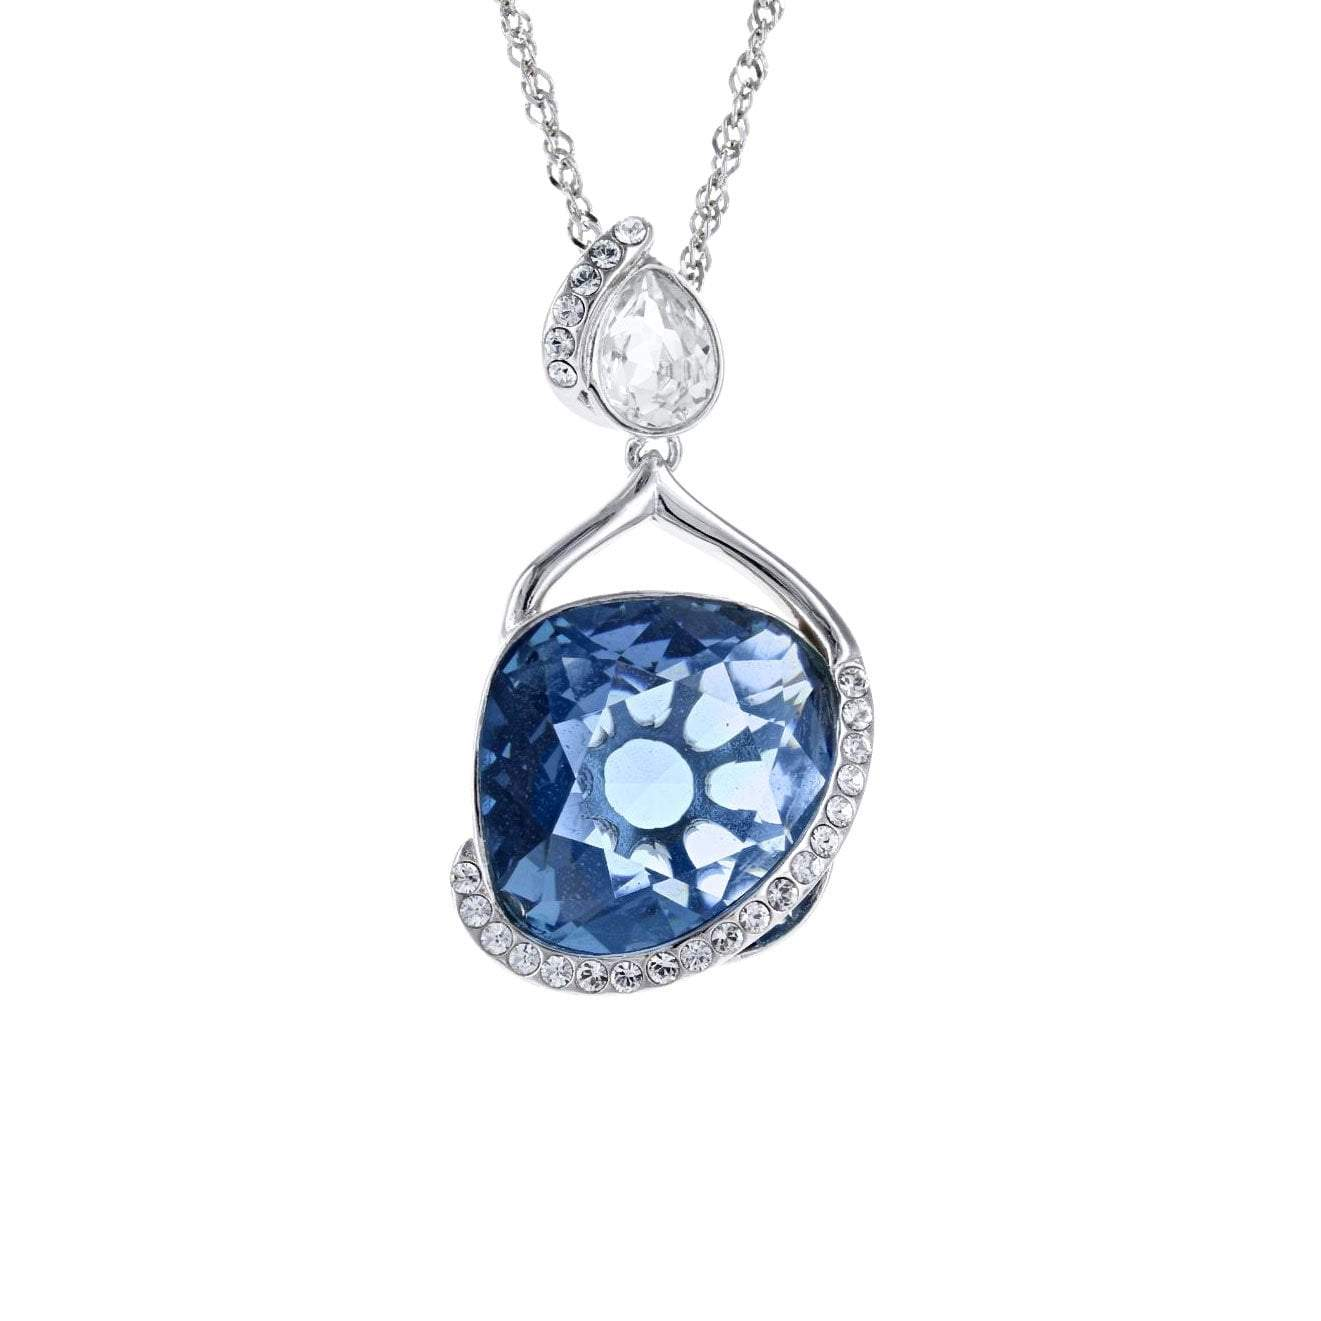 Swarovski Crystal Square Wrapped London Blue Drop Pendant in Sterling Silver